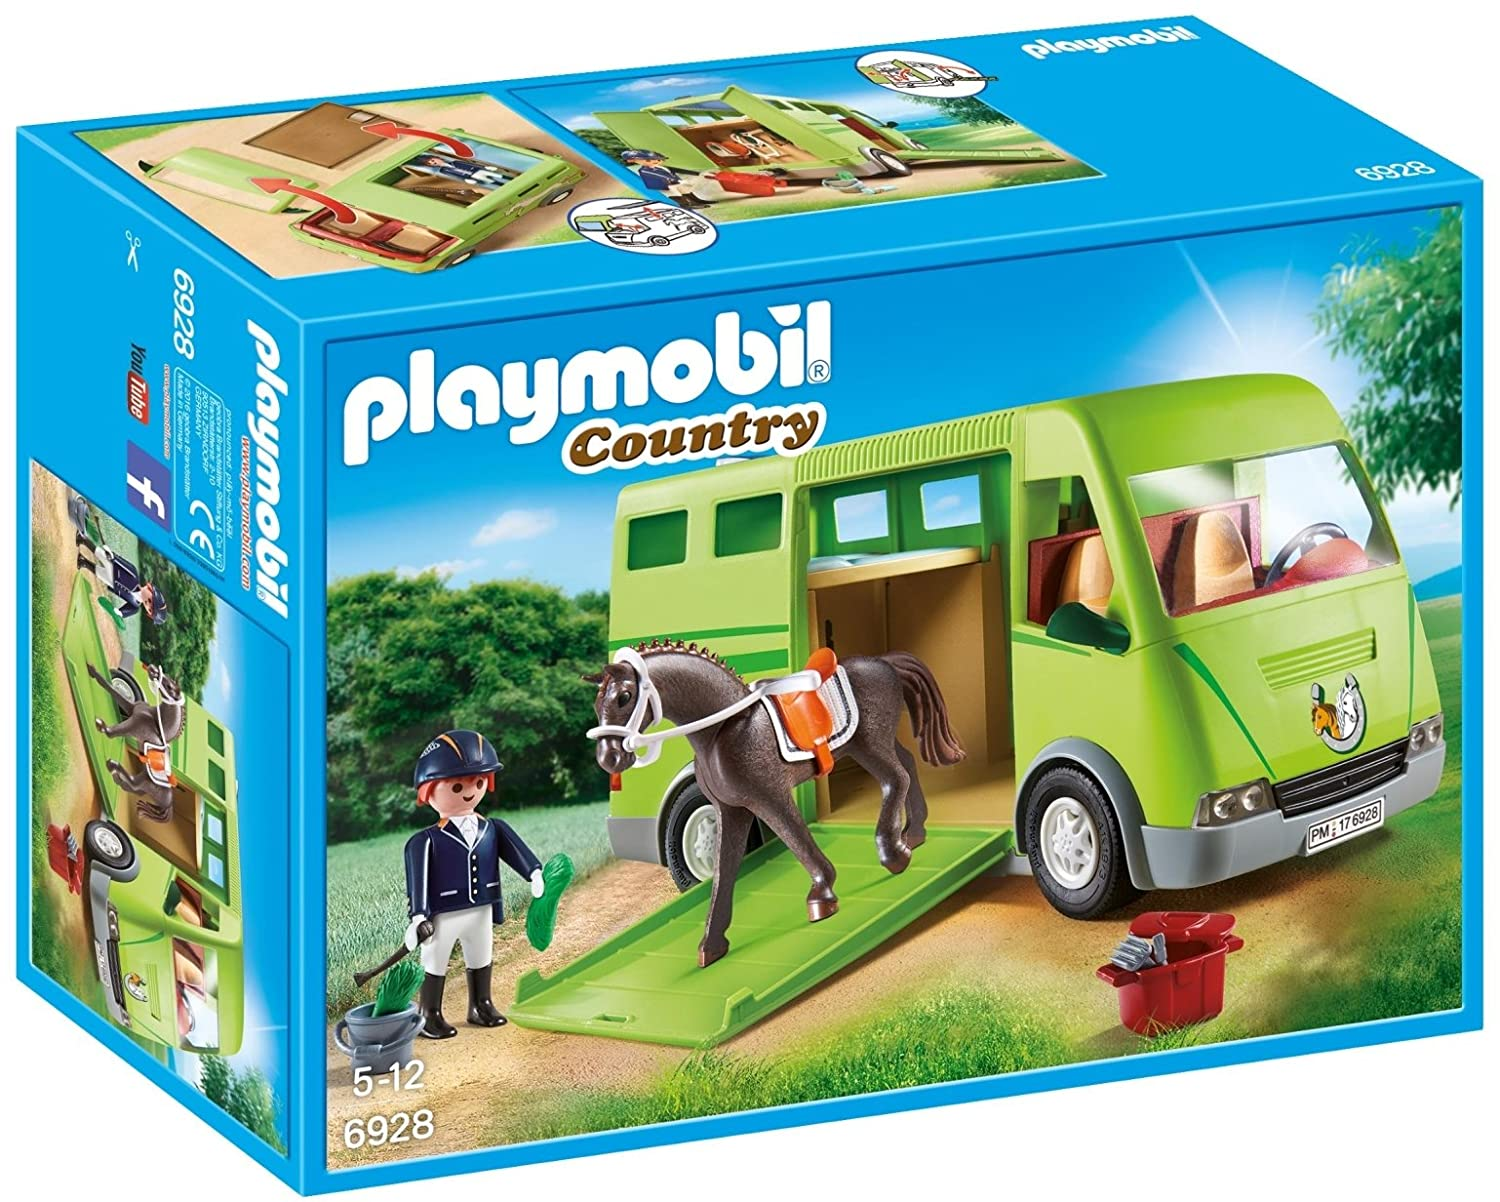 Playmobil 6928 Country Horse Box with Opening Side Door